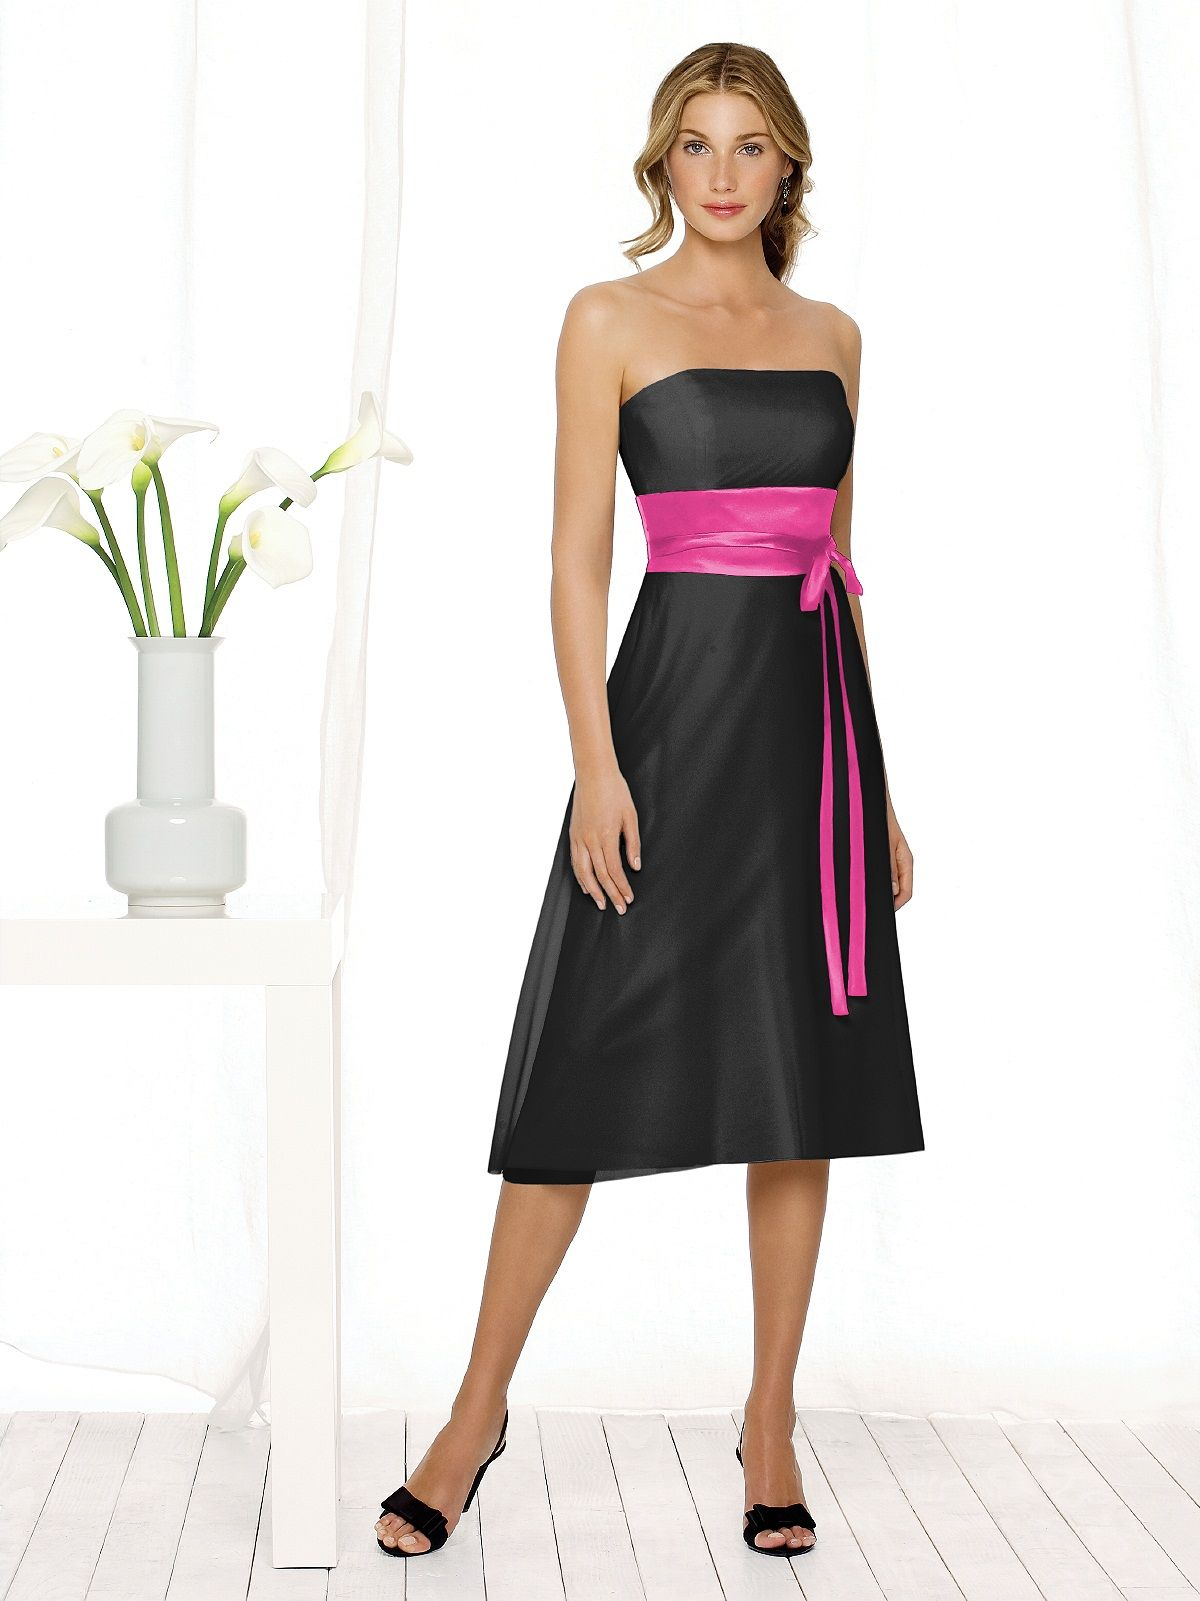 Wedding dresses for black girls  black with fuchsia Girl Dresses Accessories Swatches Mens Wear